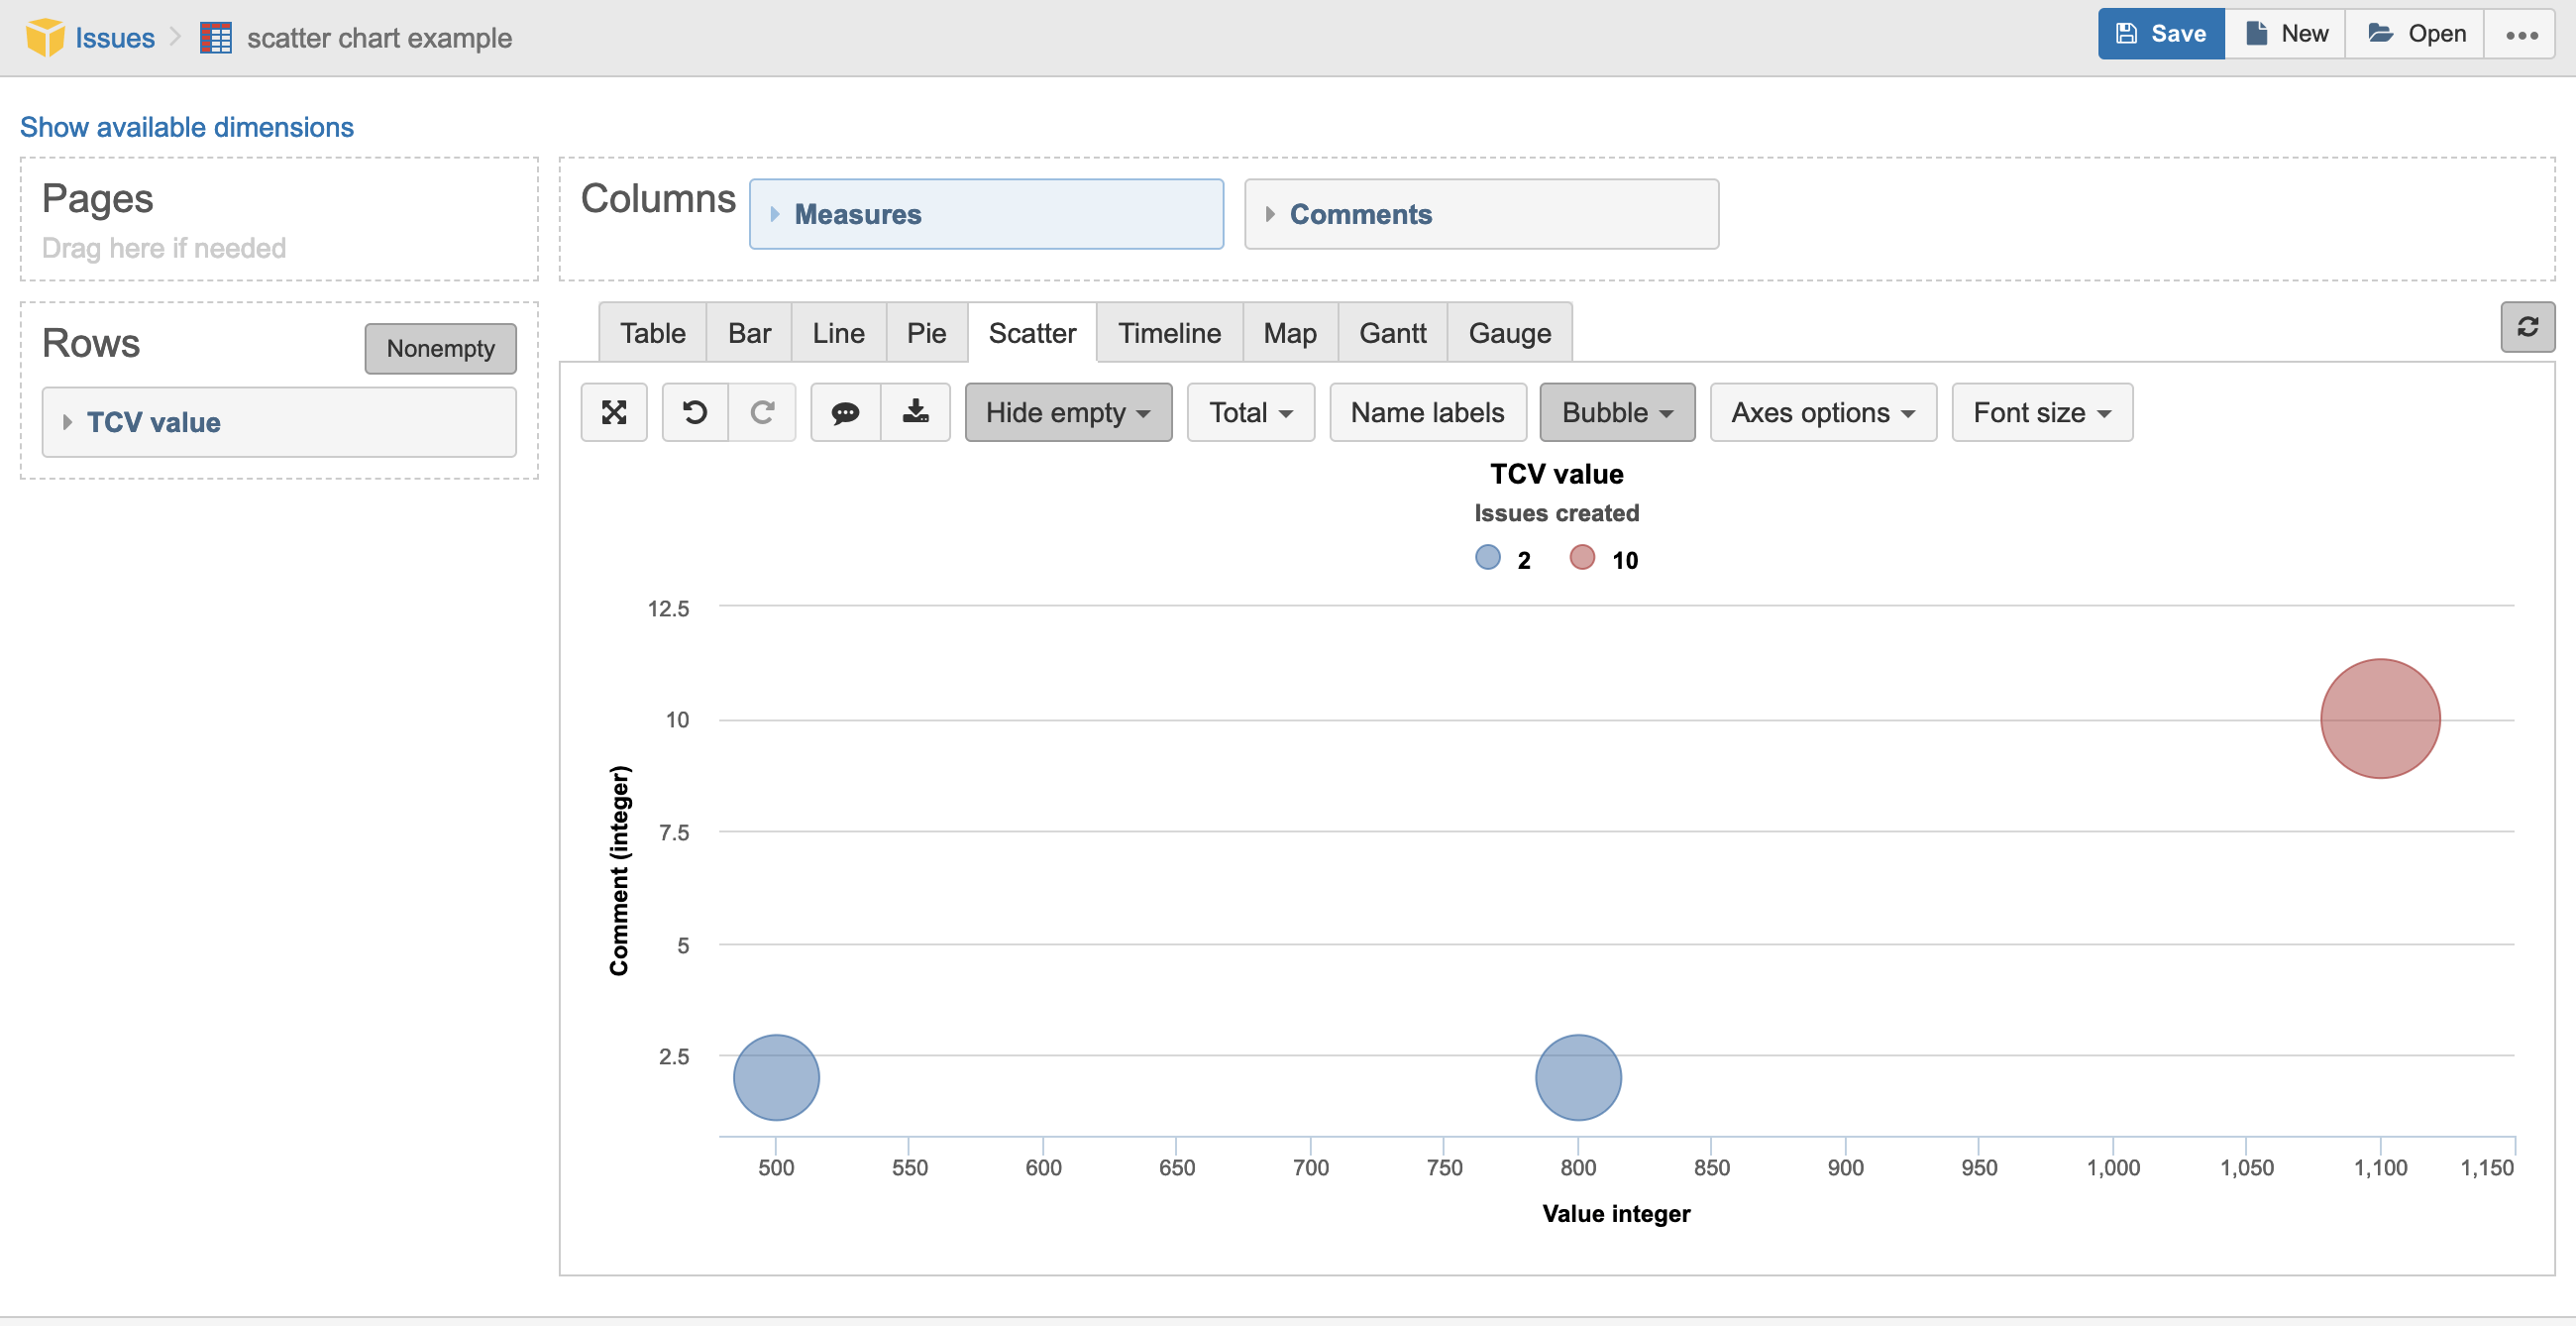 How To Show Issue Count For Each Plotted Point In Scatter